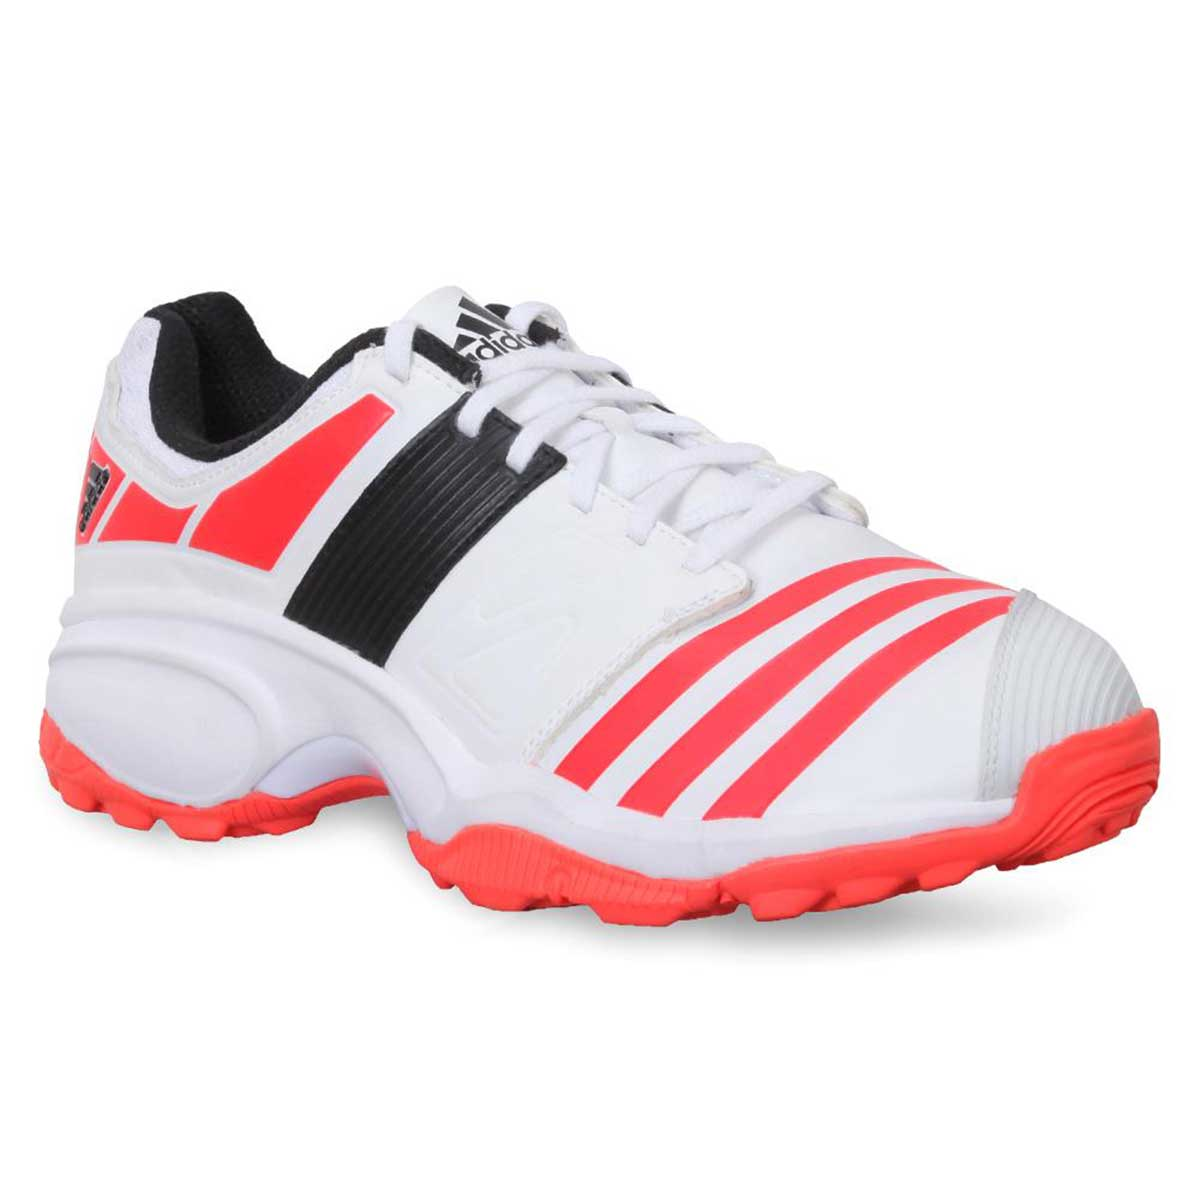 dfd3ef0541c8fe Buy Adidas Howzat FS II Cricket Shoes Online in India